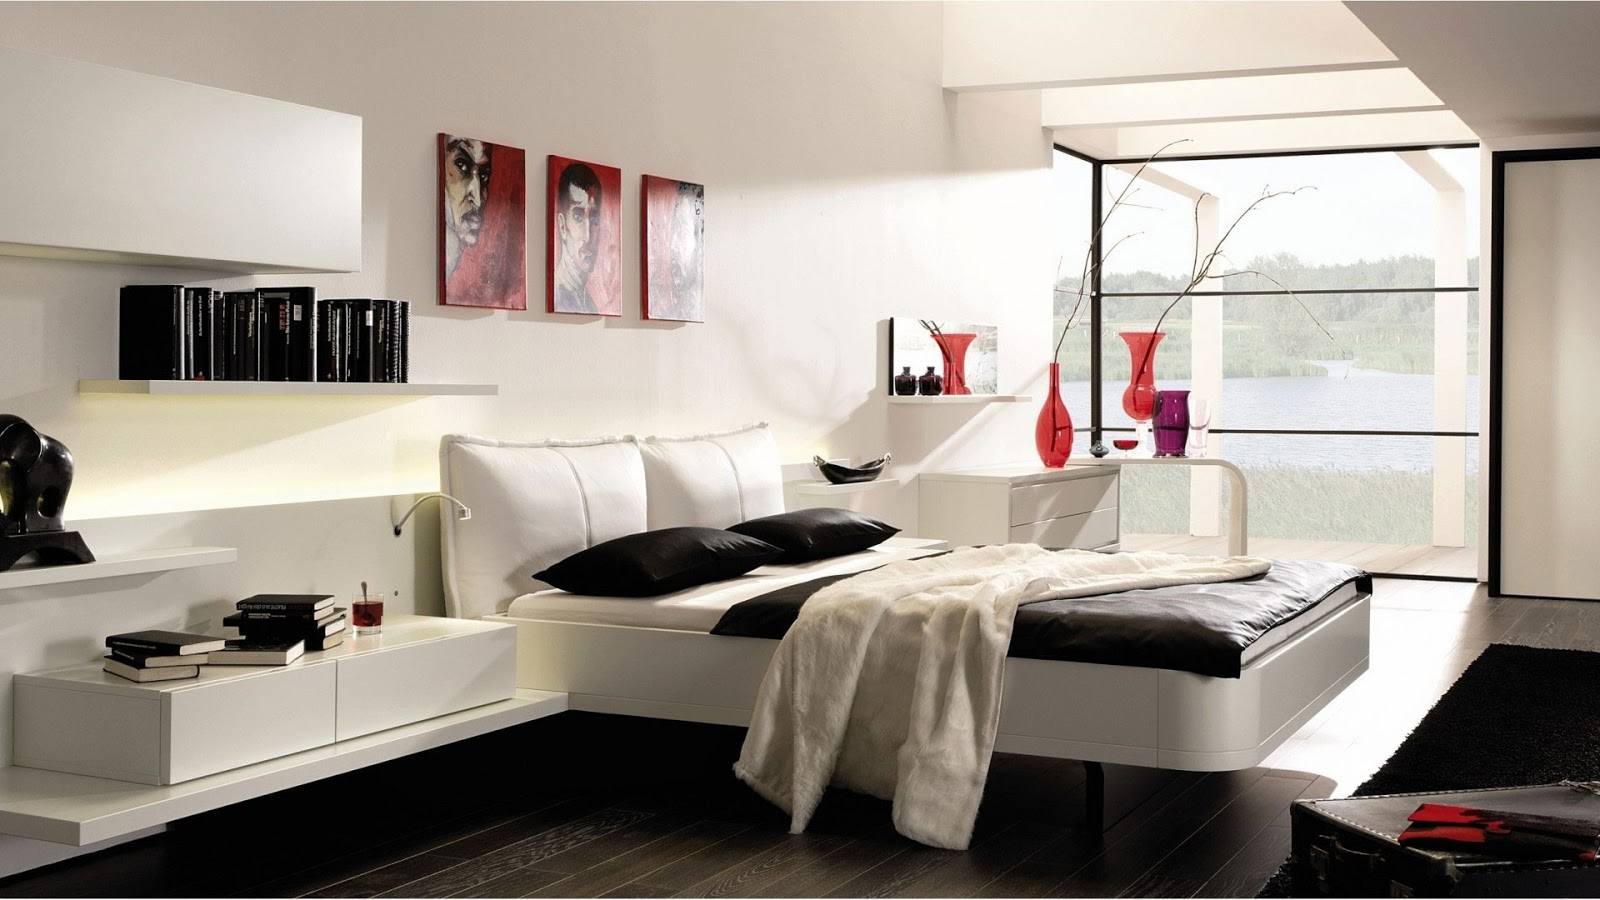 http://2.bp.blogspot.com/-3DPLPC-Xppc/UWmtbWsRpfI/AAAAAAAAYIc/BBR1Cpg6FEI/s1600/black-and-white-bedroom-hd-wallpaper.jpg